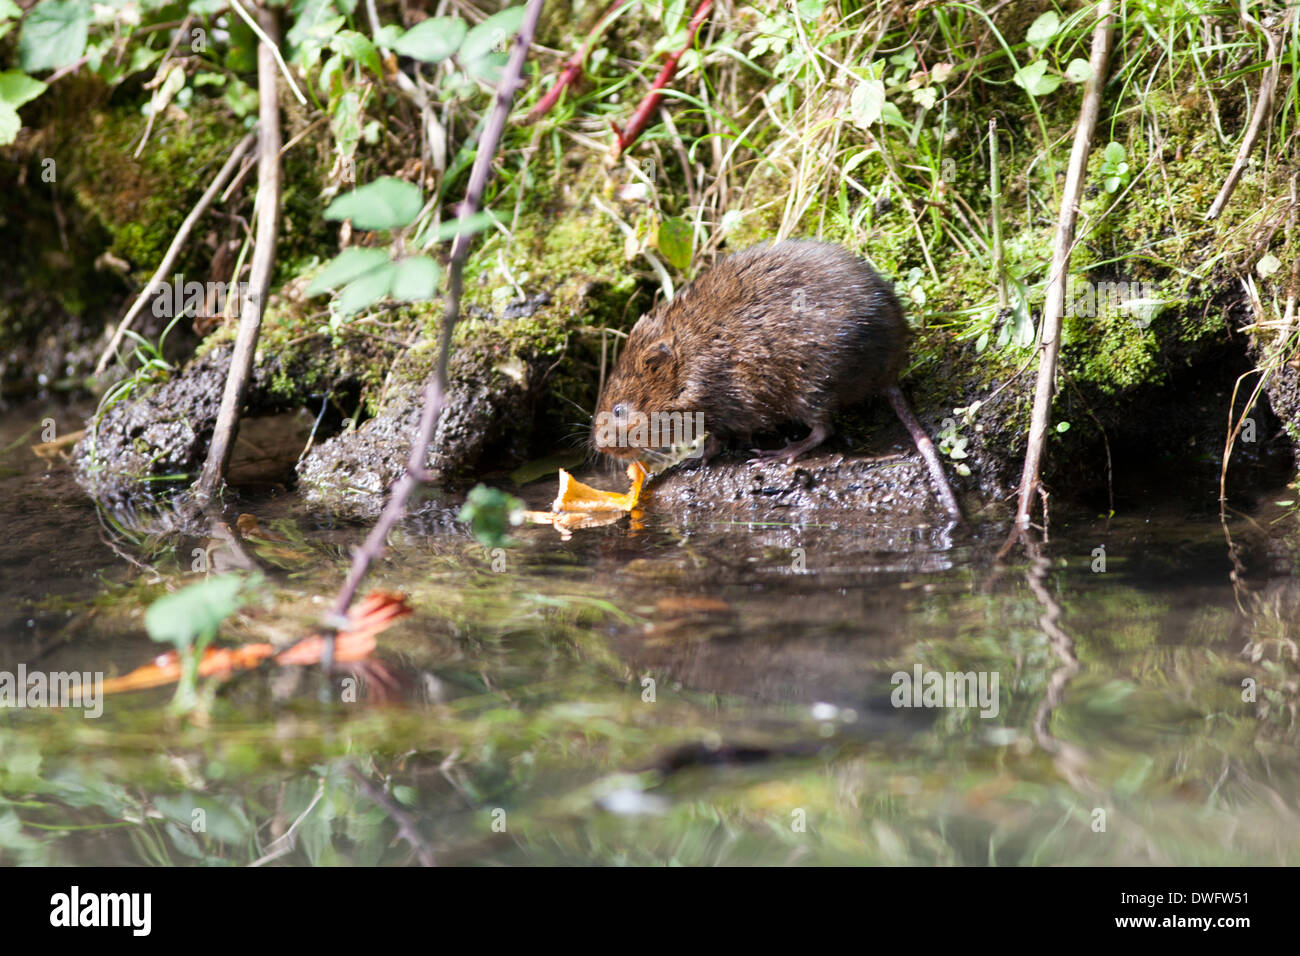 European Water Vole in the UK - Stock Image